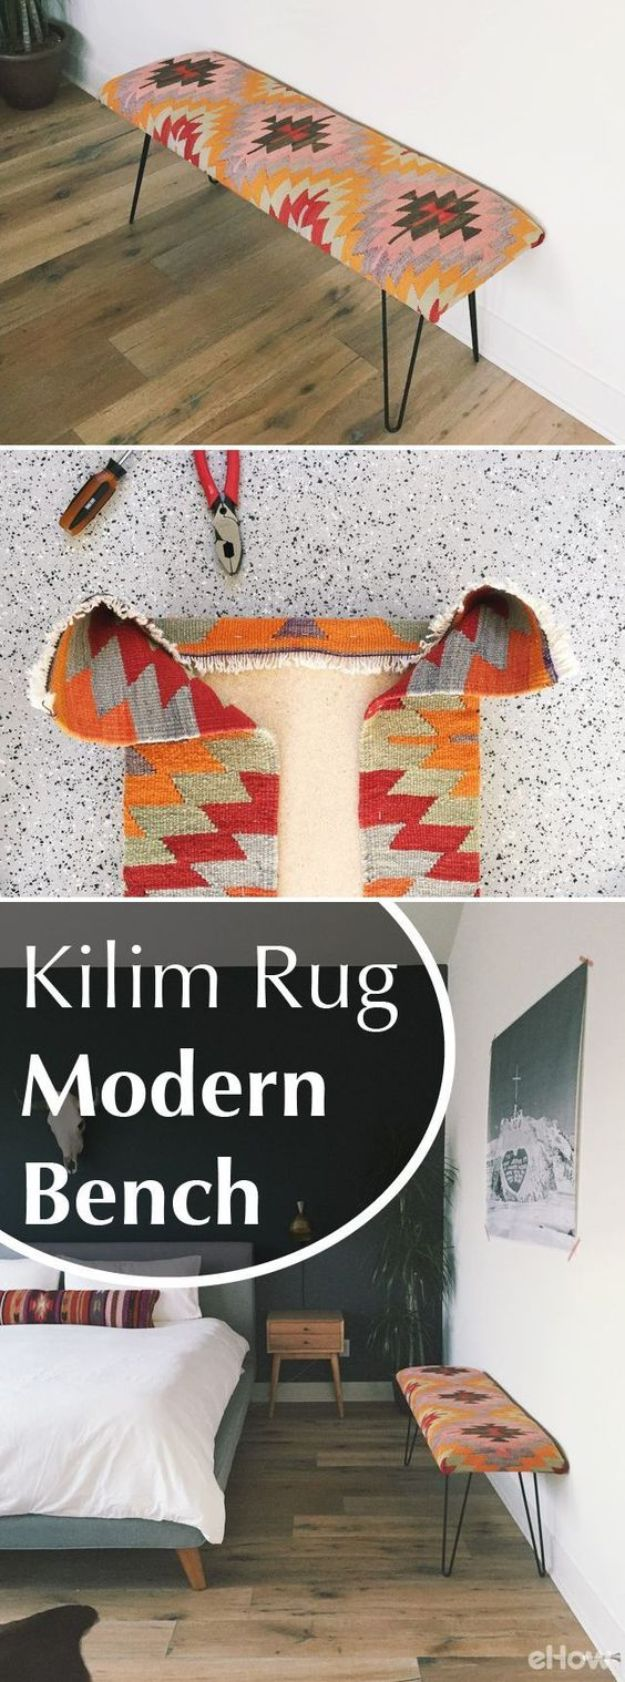 DIY Modern Home Decor - Kilim Rug Modern Bench - Room Ideas, Wall Art on A Budget, Farmhouse Style Projects - Easy DIY Ideas and Decorations for Apartments, Living Room, Bedroom, Kitchen and Bath - Fixer Upper Tips and Tricks